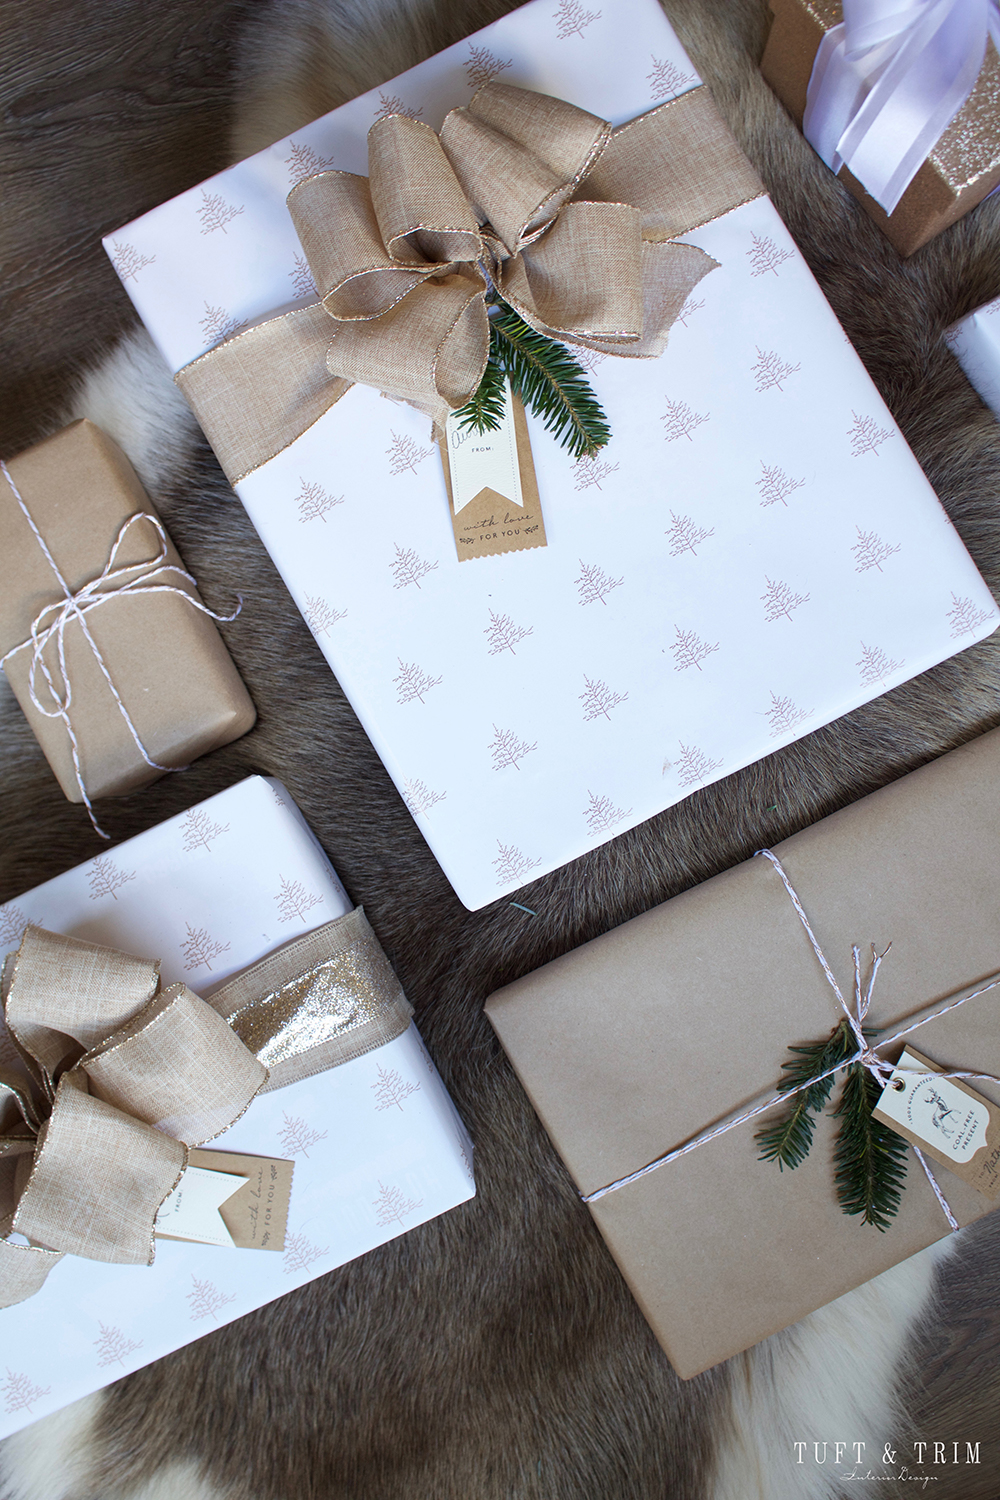 Champagne and Linen Christmas Gift Wrap. Get wrapping ideas at tuftandtrim.com!